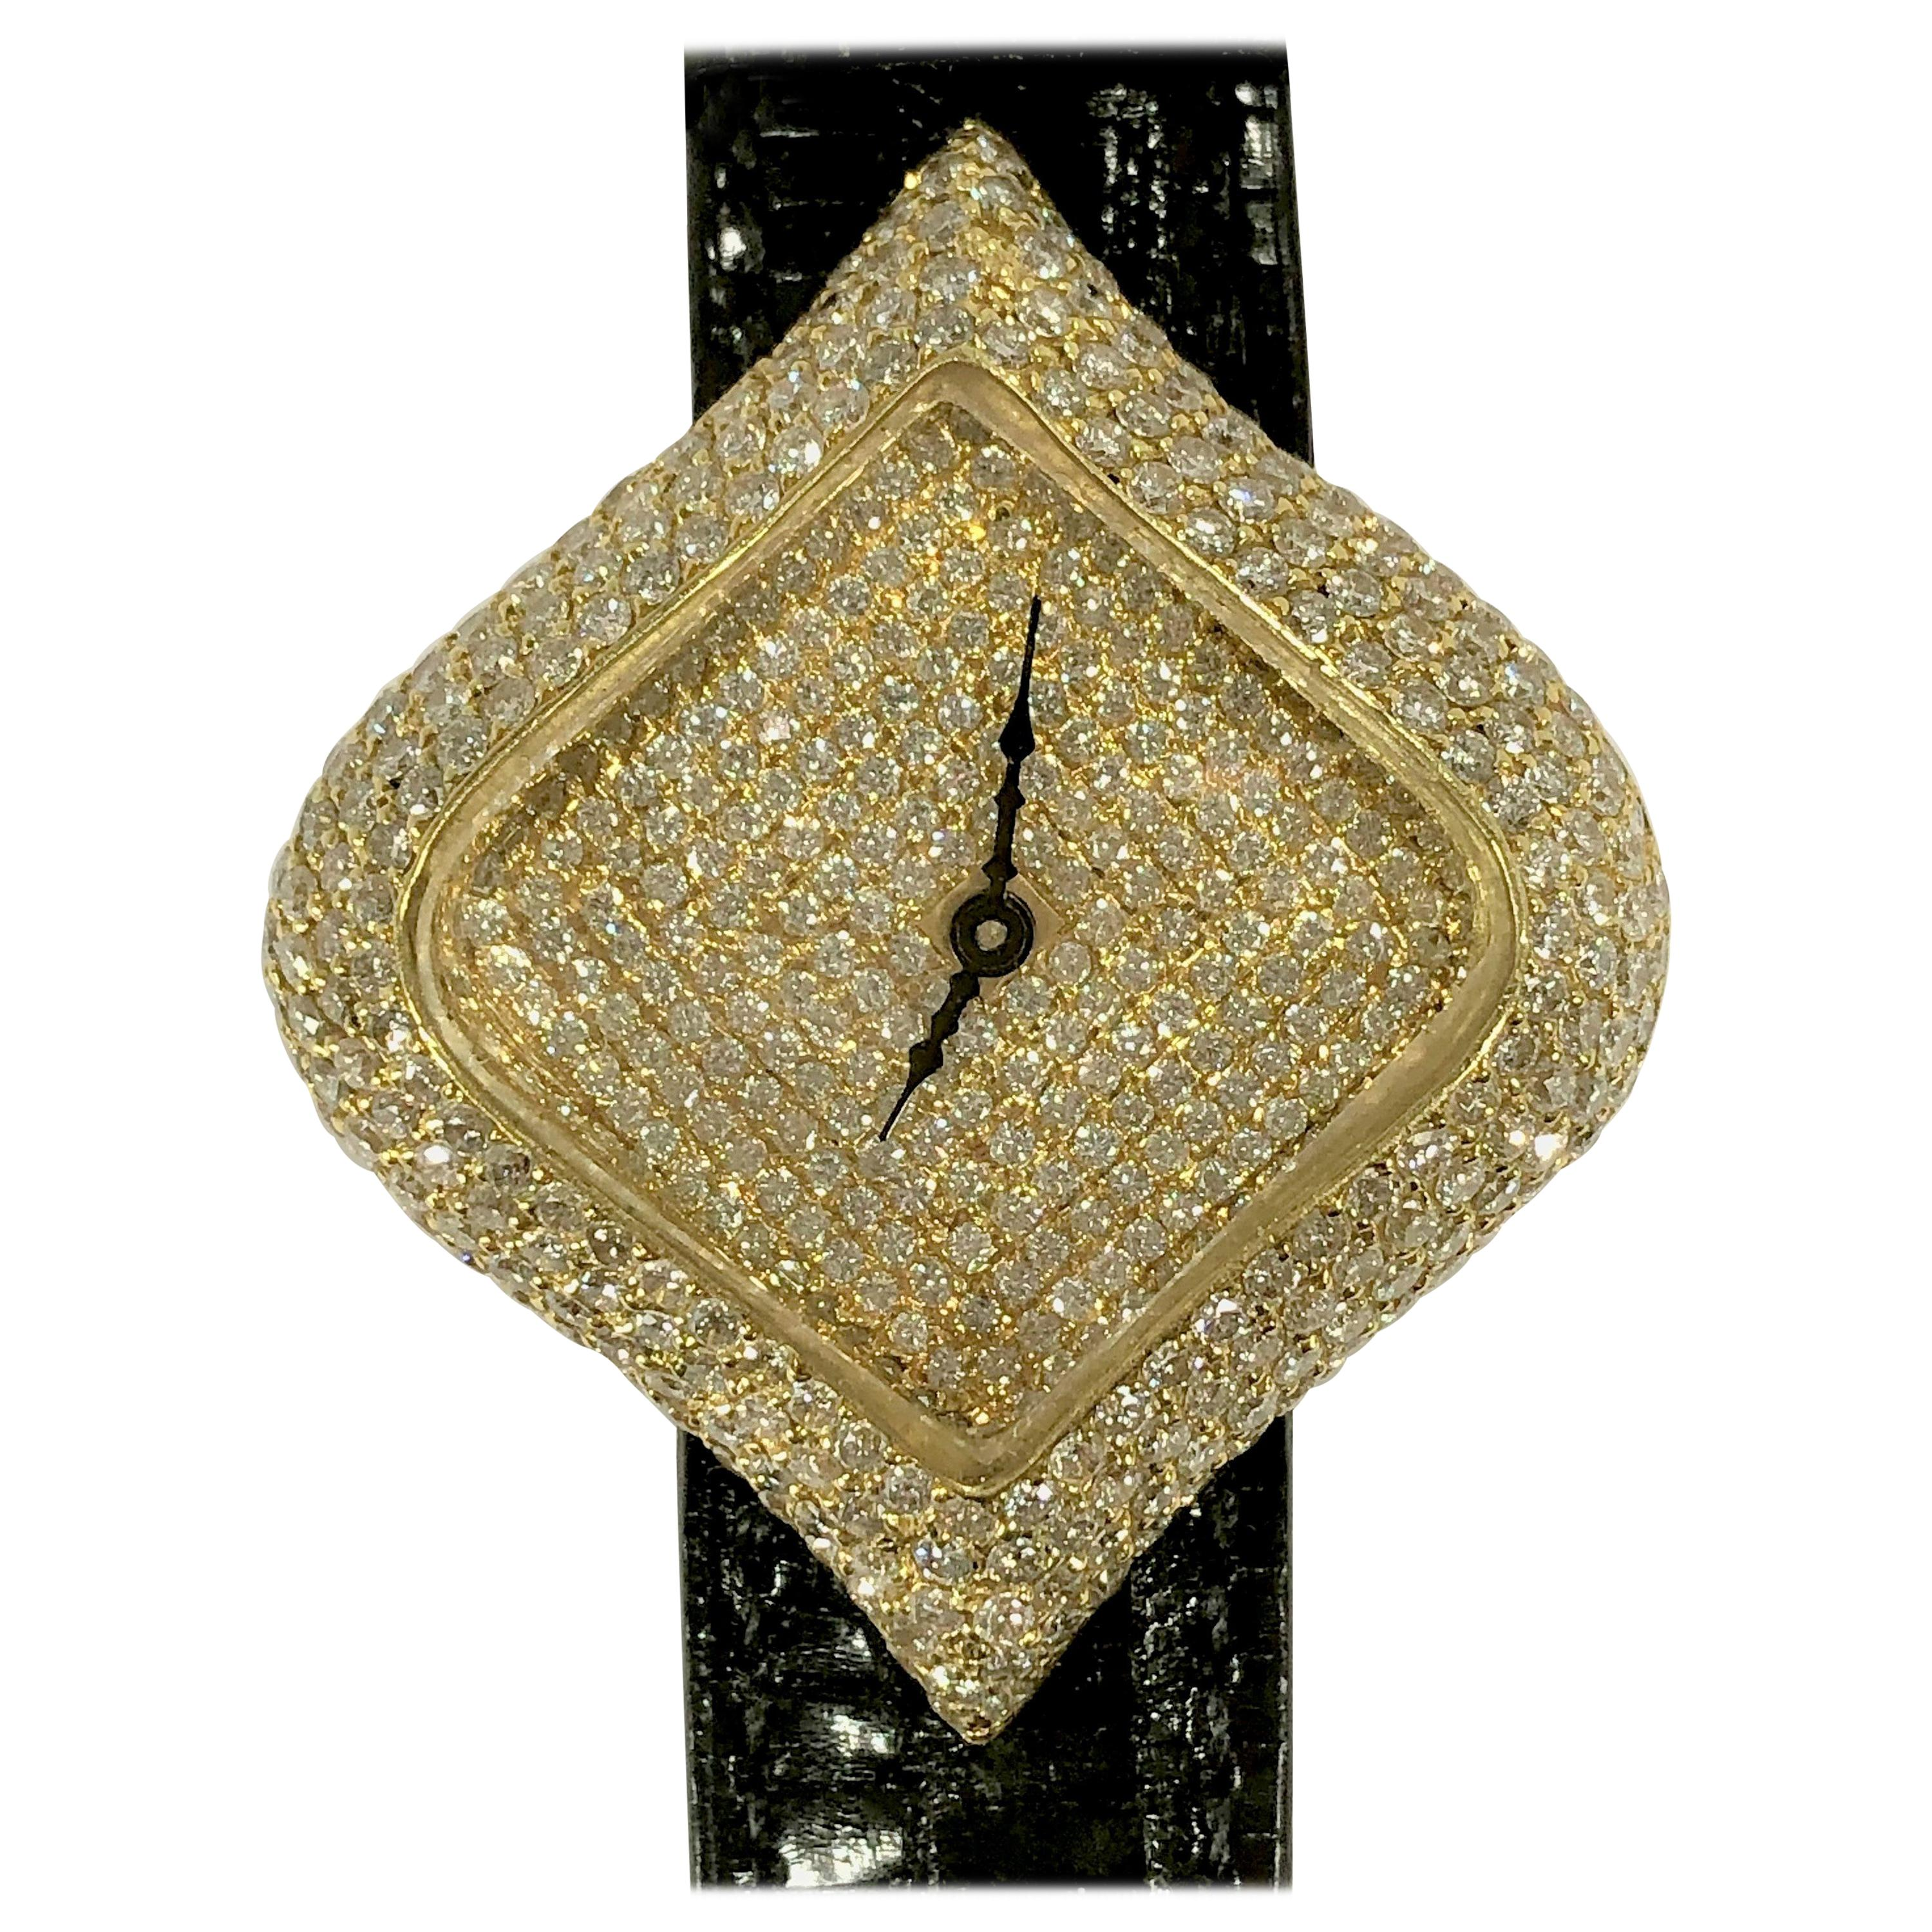 Uniquely Shaped Diamond Encrusted Yellow Gold Watch with Black Lizard Strap